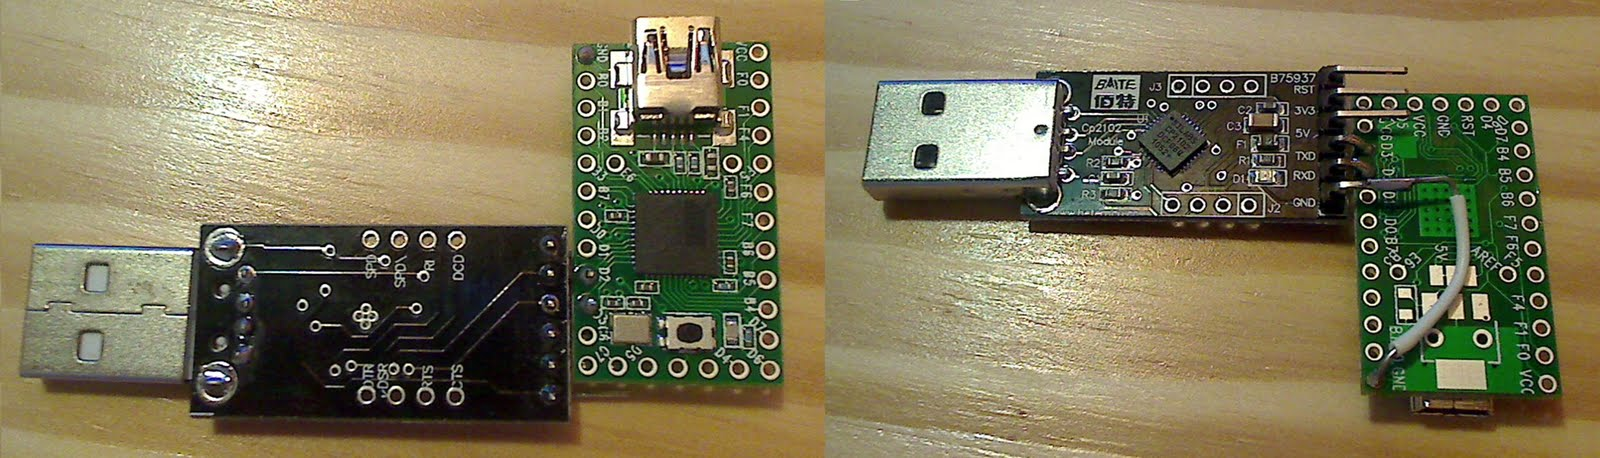 DIY USB adapter - GIMX